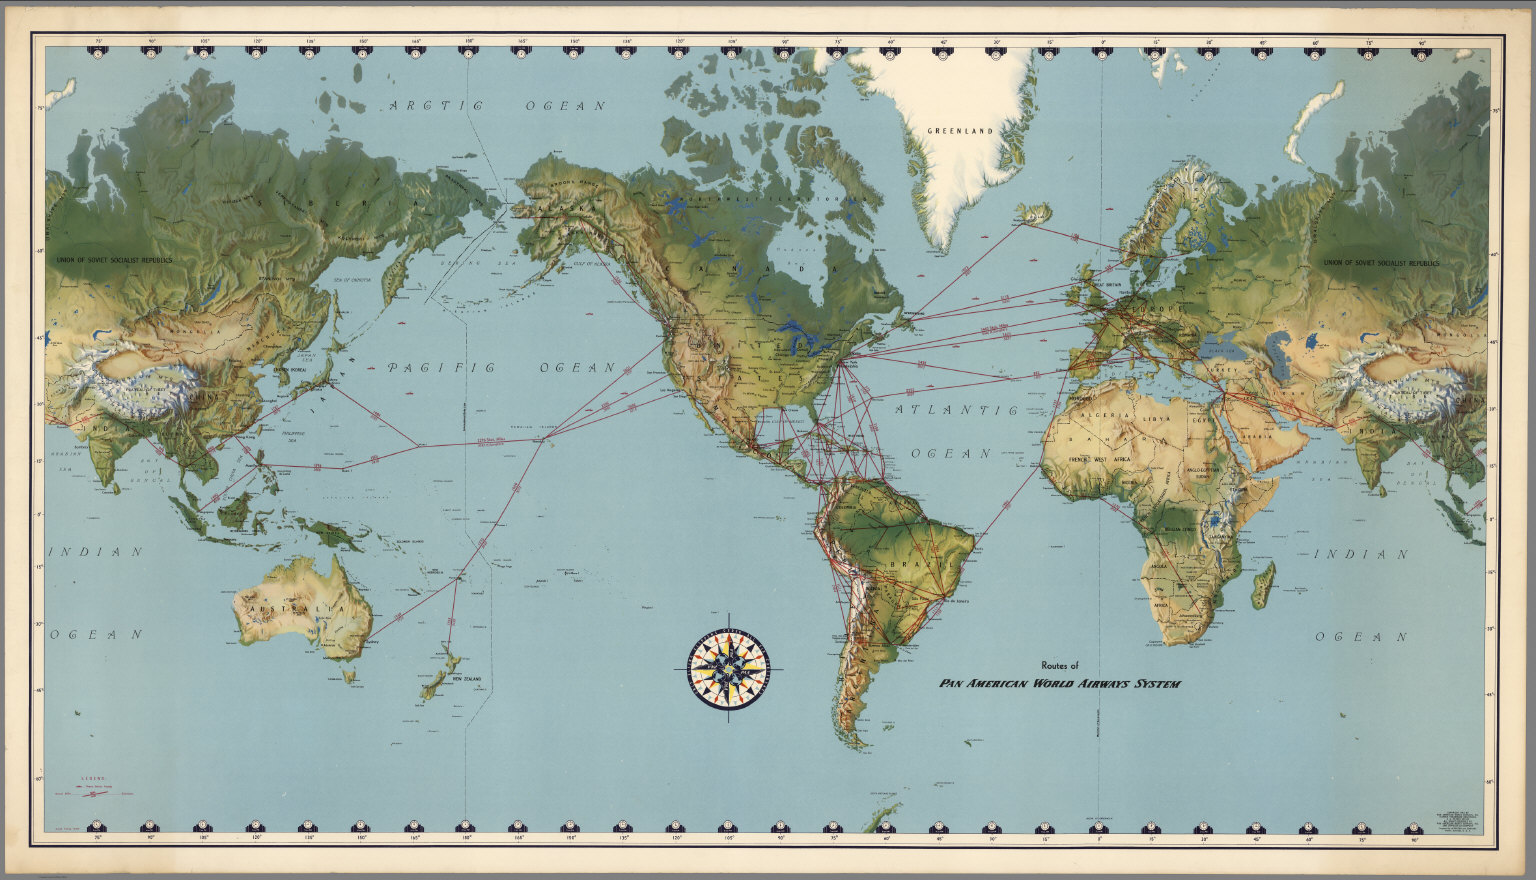 routes of pan american world airways system